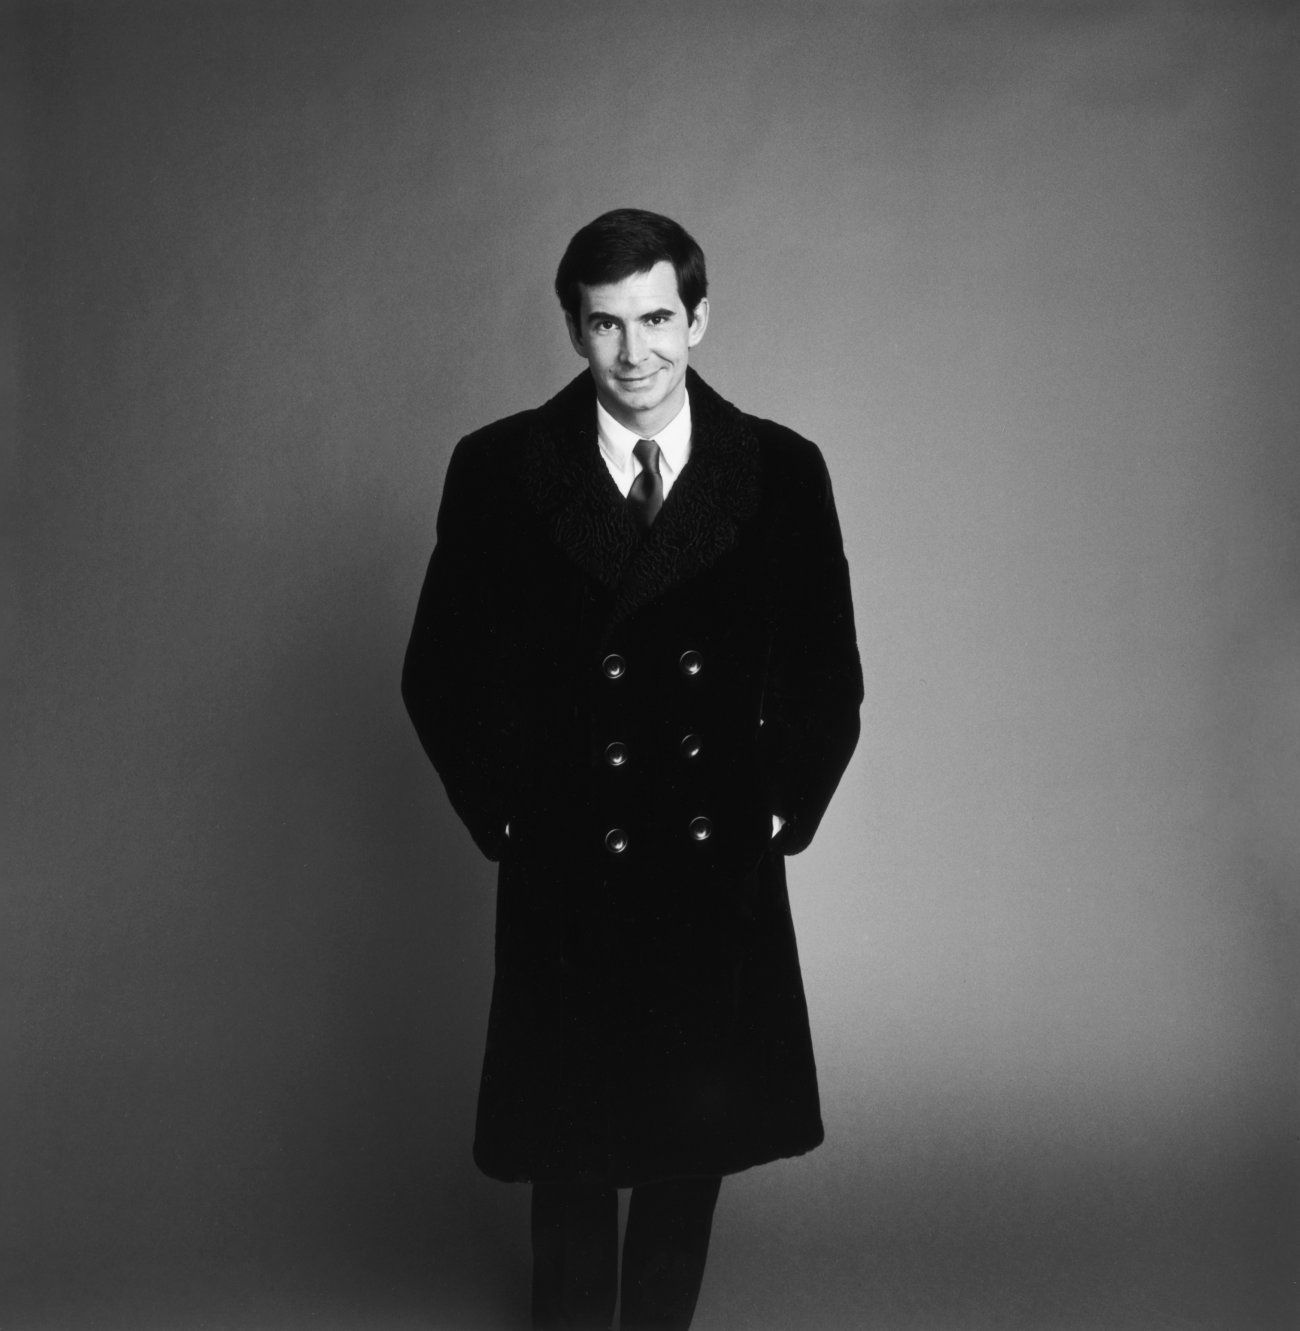 anthony perkins son